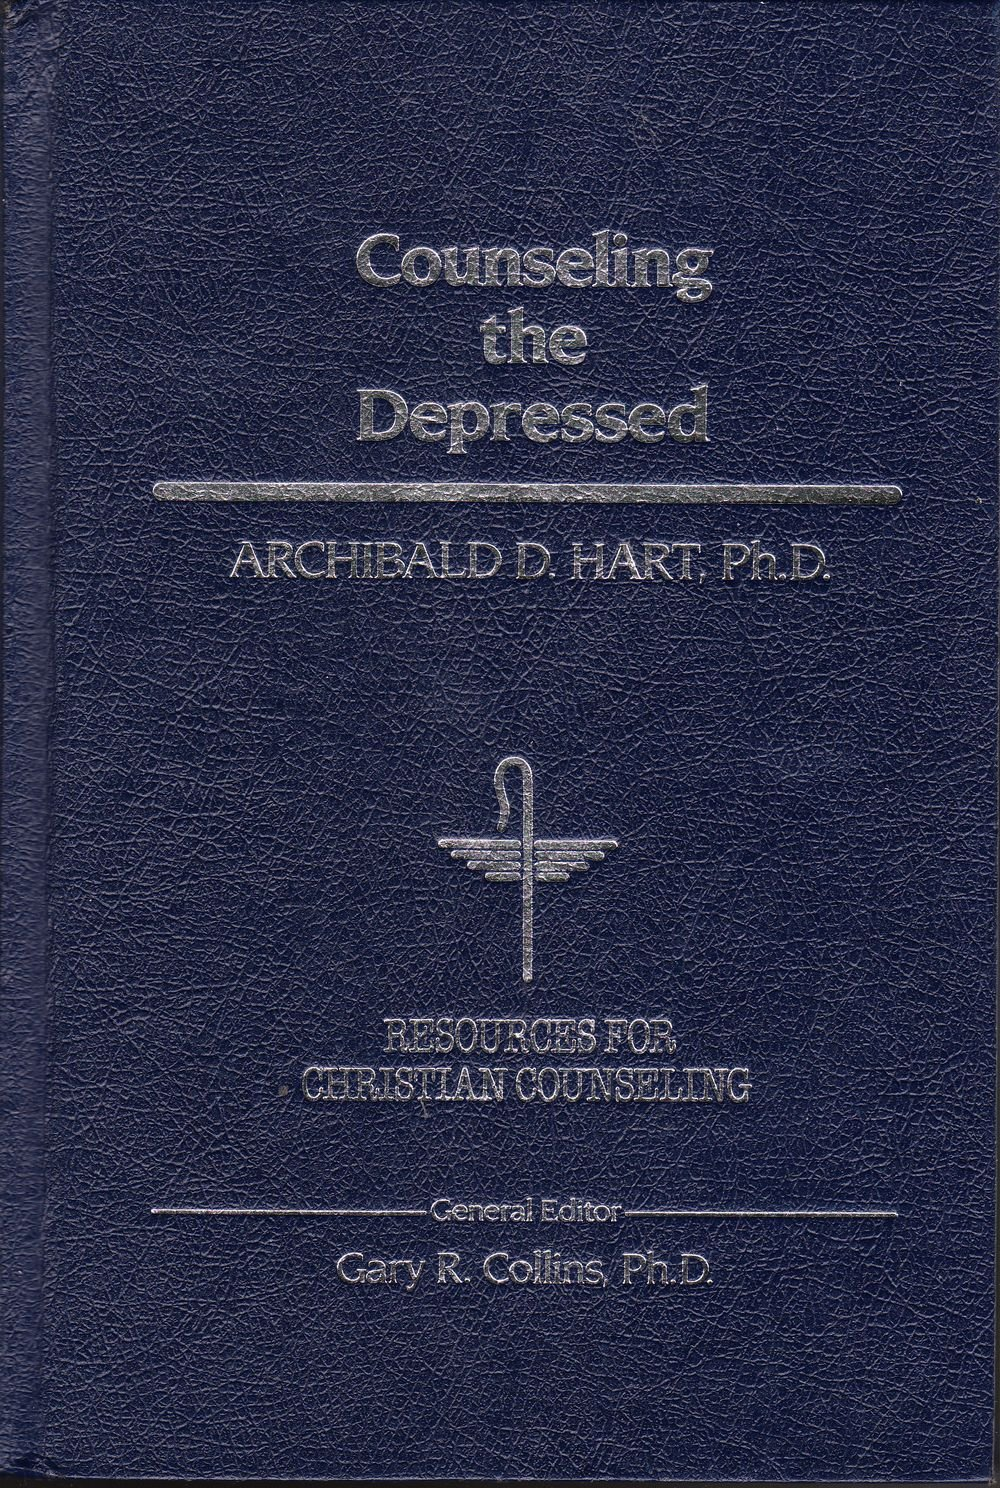 Counseling The Depressed Resources For Christian Counseling